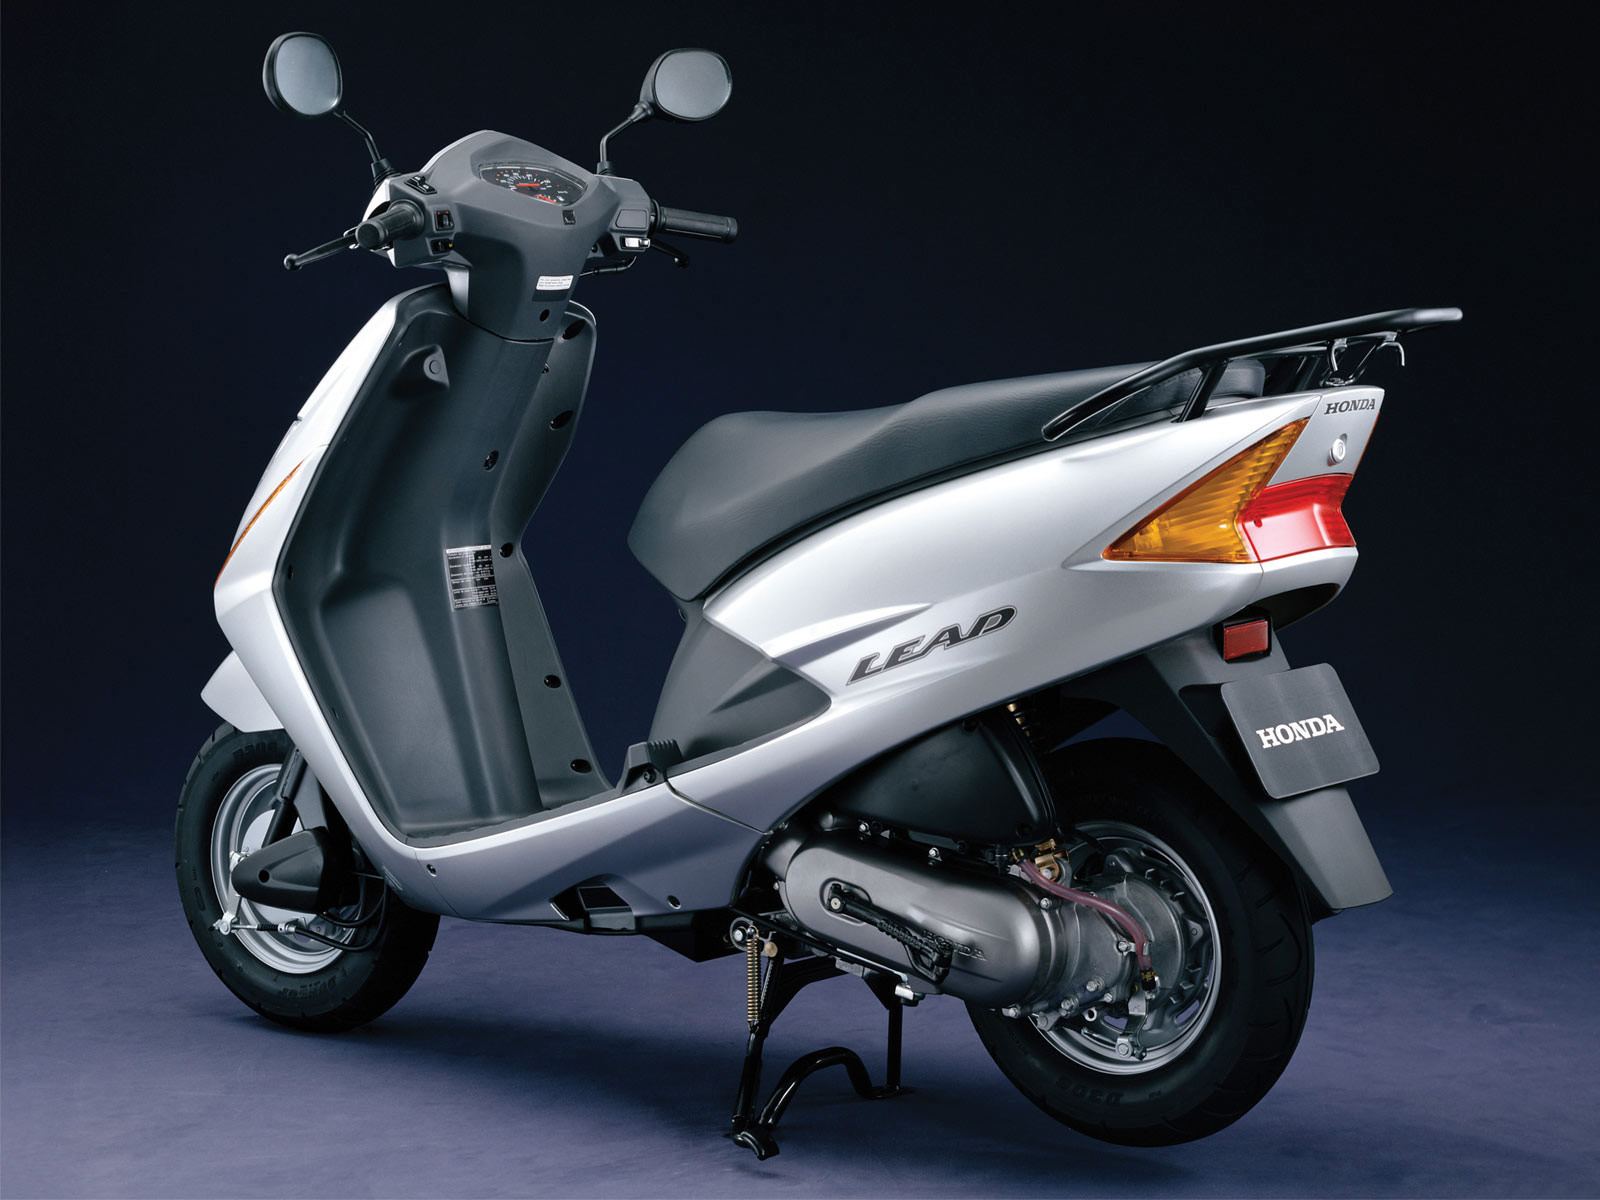 2003 honda lead scooter pictures accident lawyers info. Black Bedroom Furniture Sets. Home Design Ideas